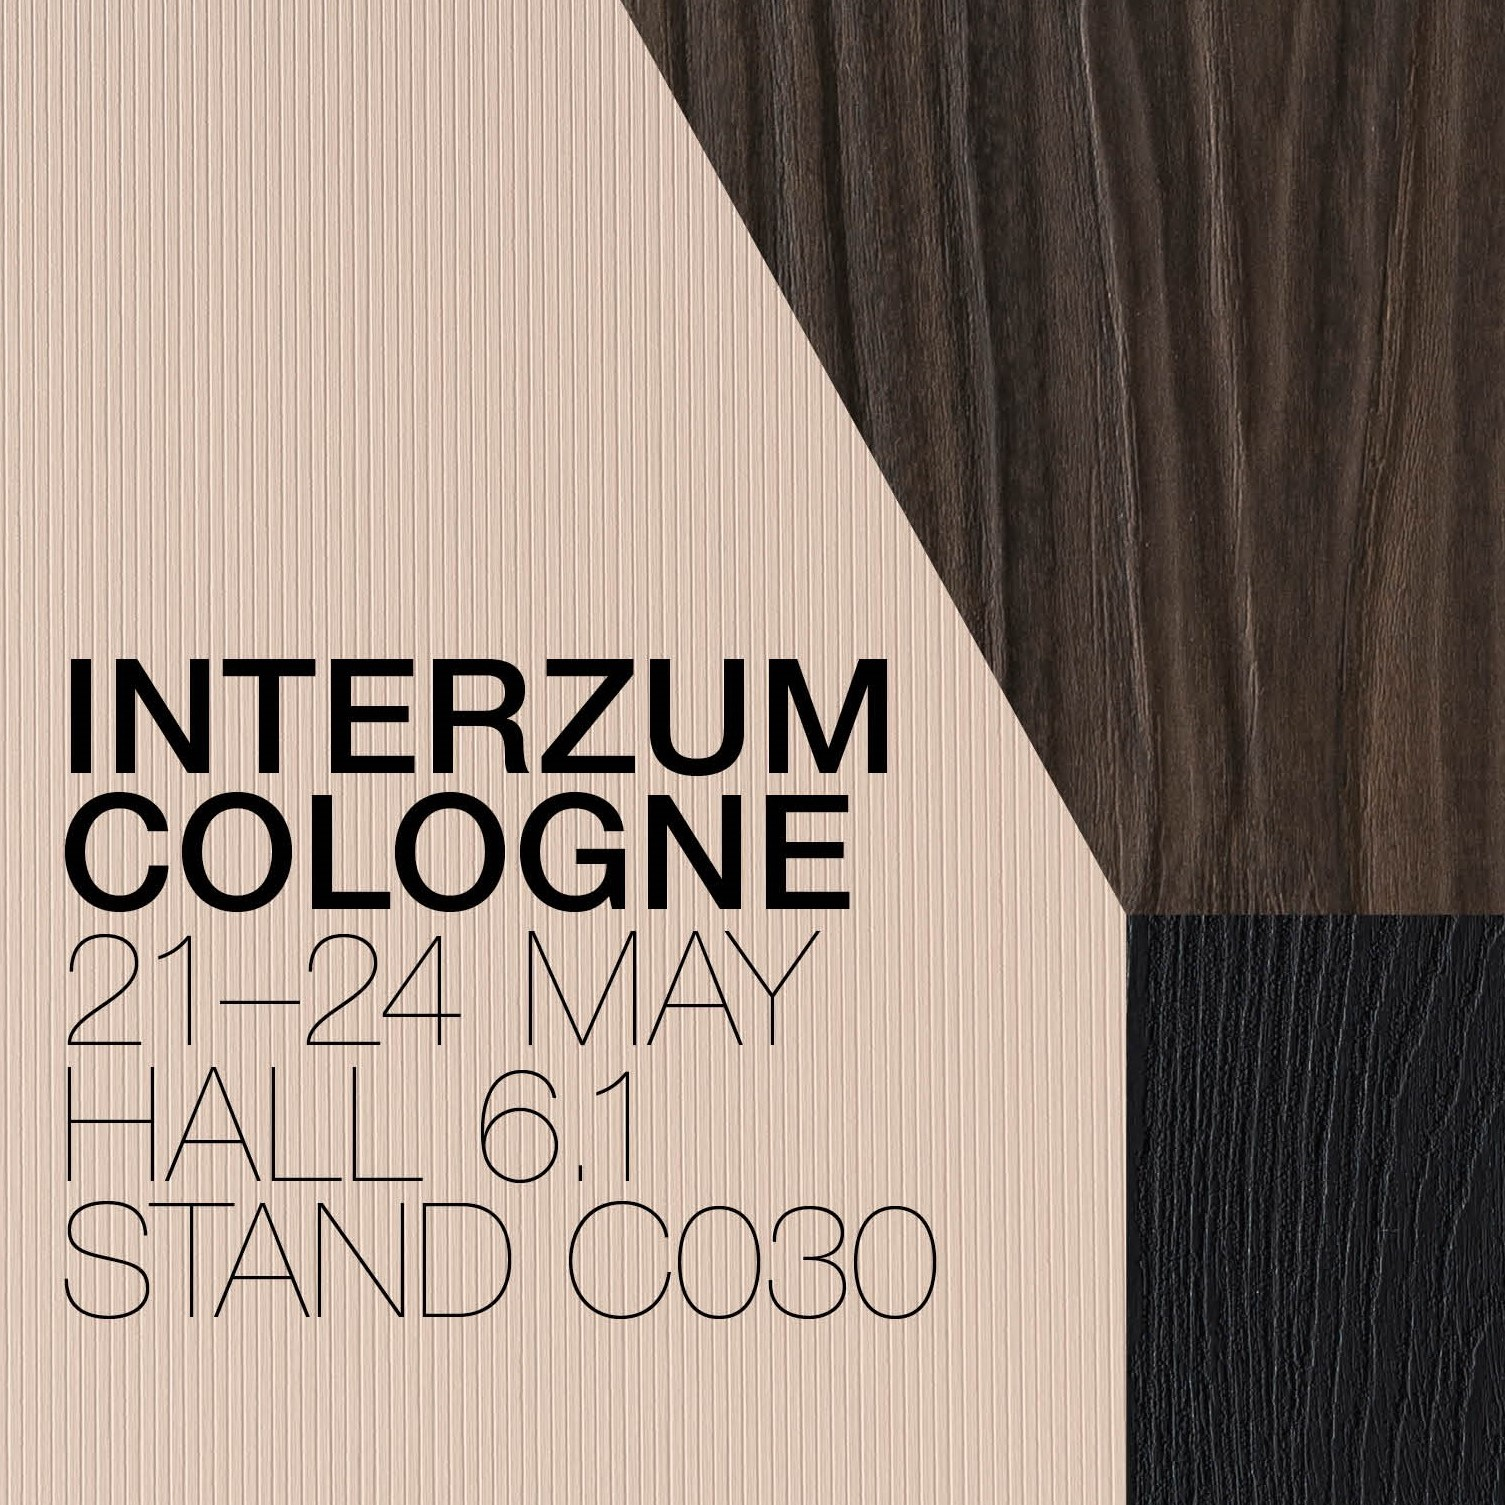 Cleaf presenteert op Interzum 2019